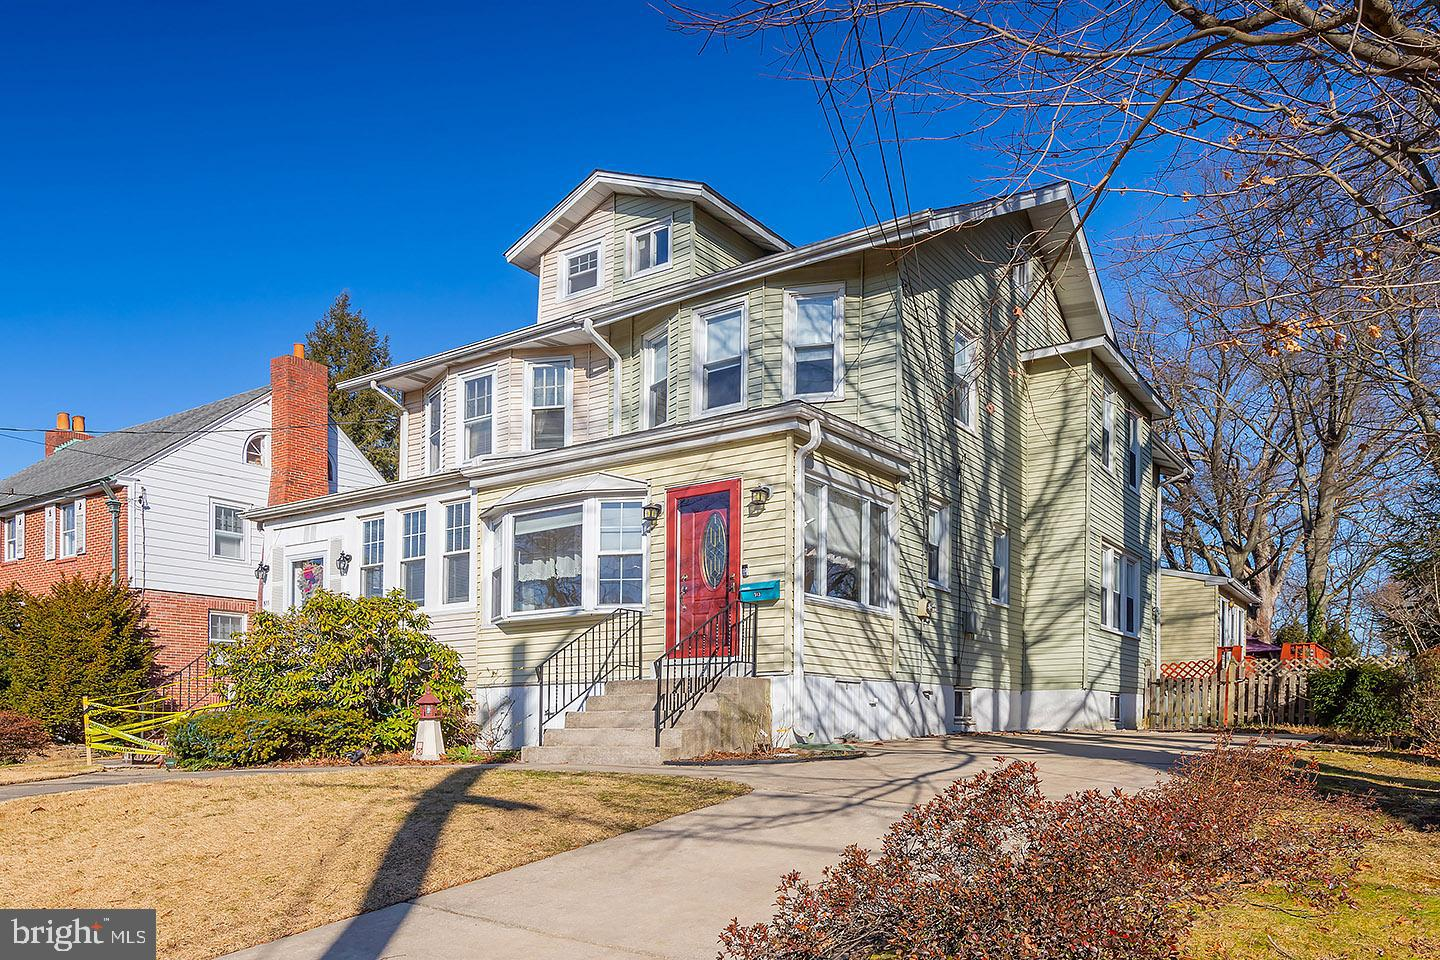 513 BETTLEWOOD AVE, COLLINGSWOOD, NJ 08108